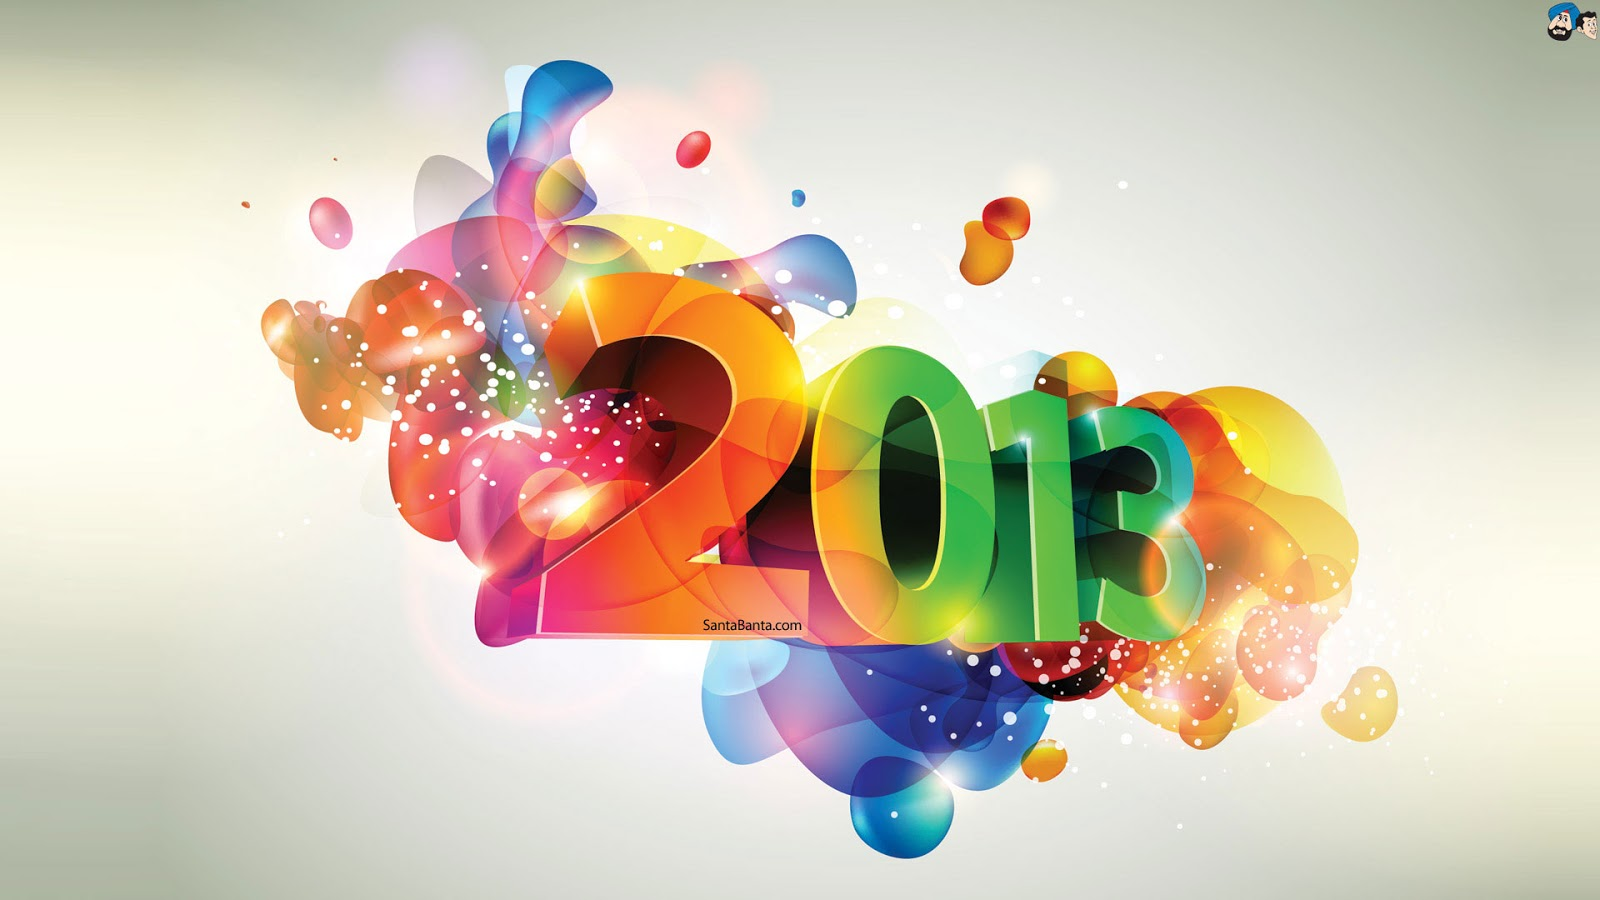 2013 happy new year wallpapers dezignhd best source for 2013 happy new year wallpapers baditri Gallery